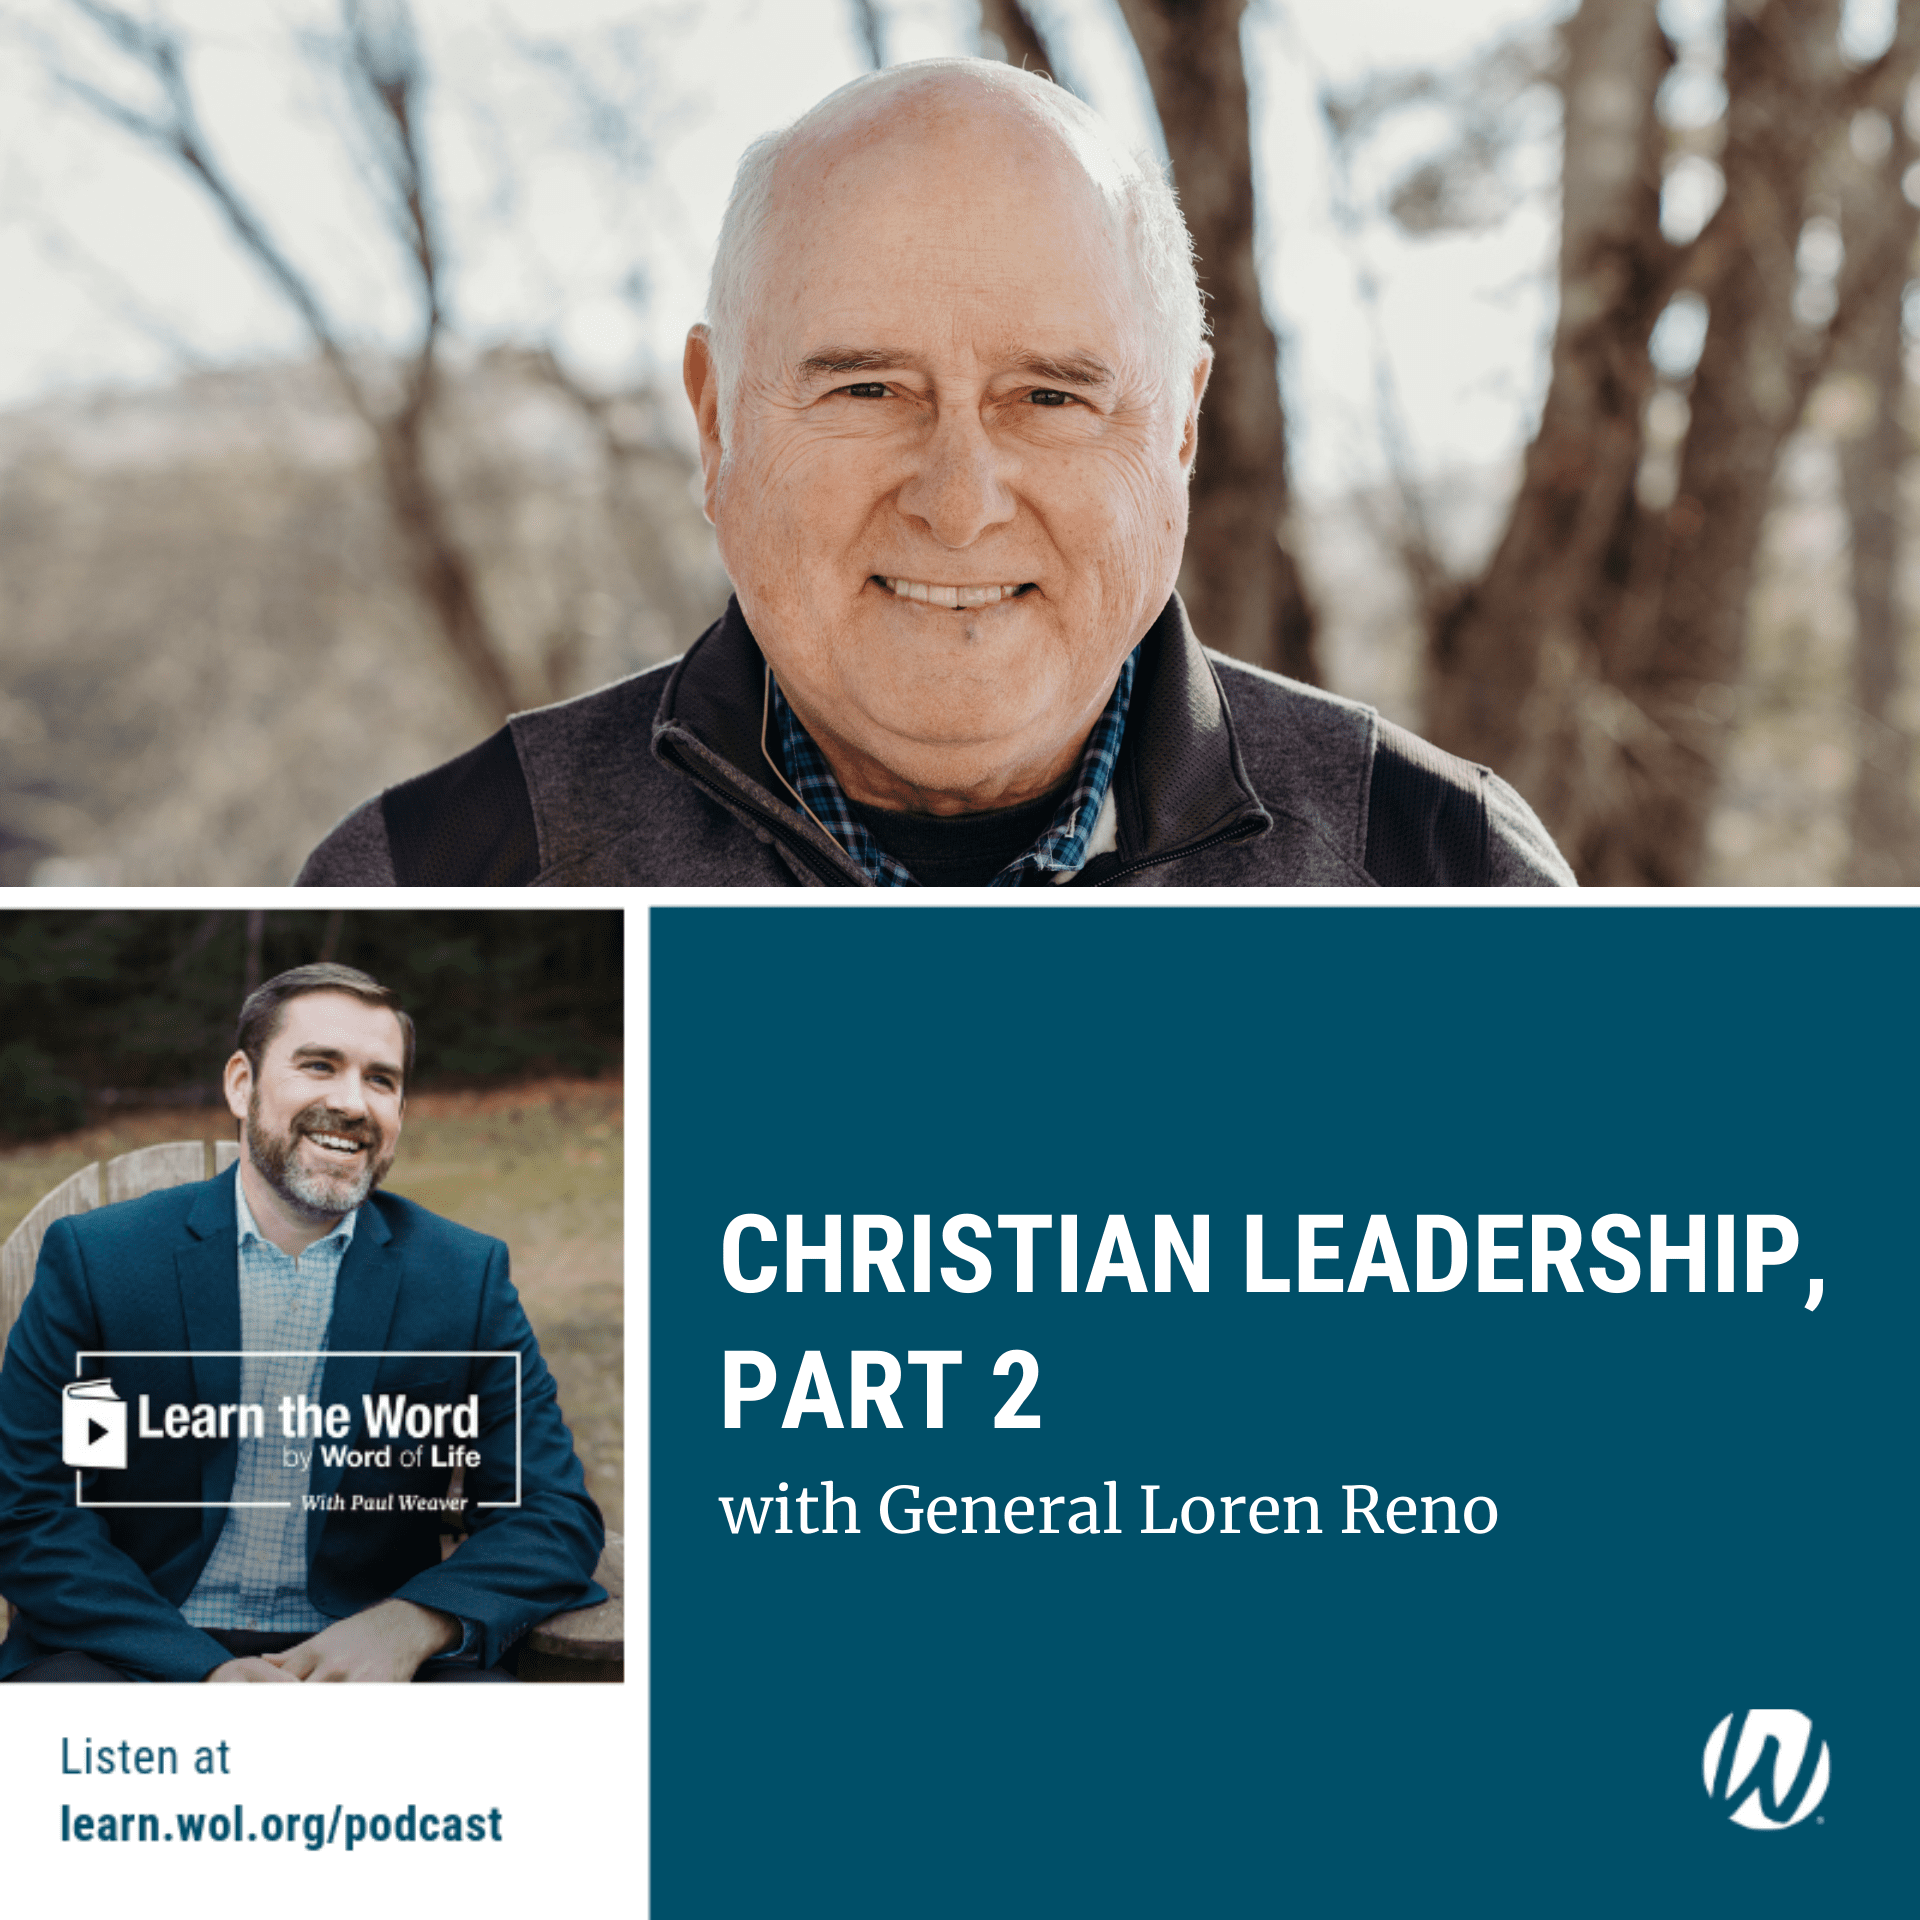 LTW154 - Christian Leadership – Part 2 - General Loren Reno podcast cover art